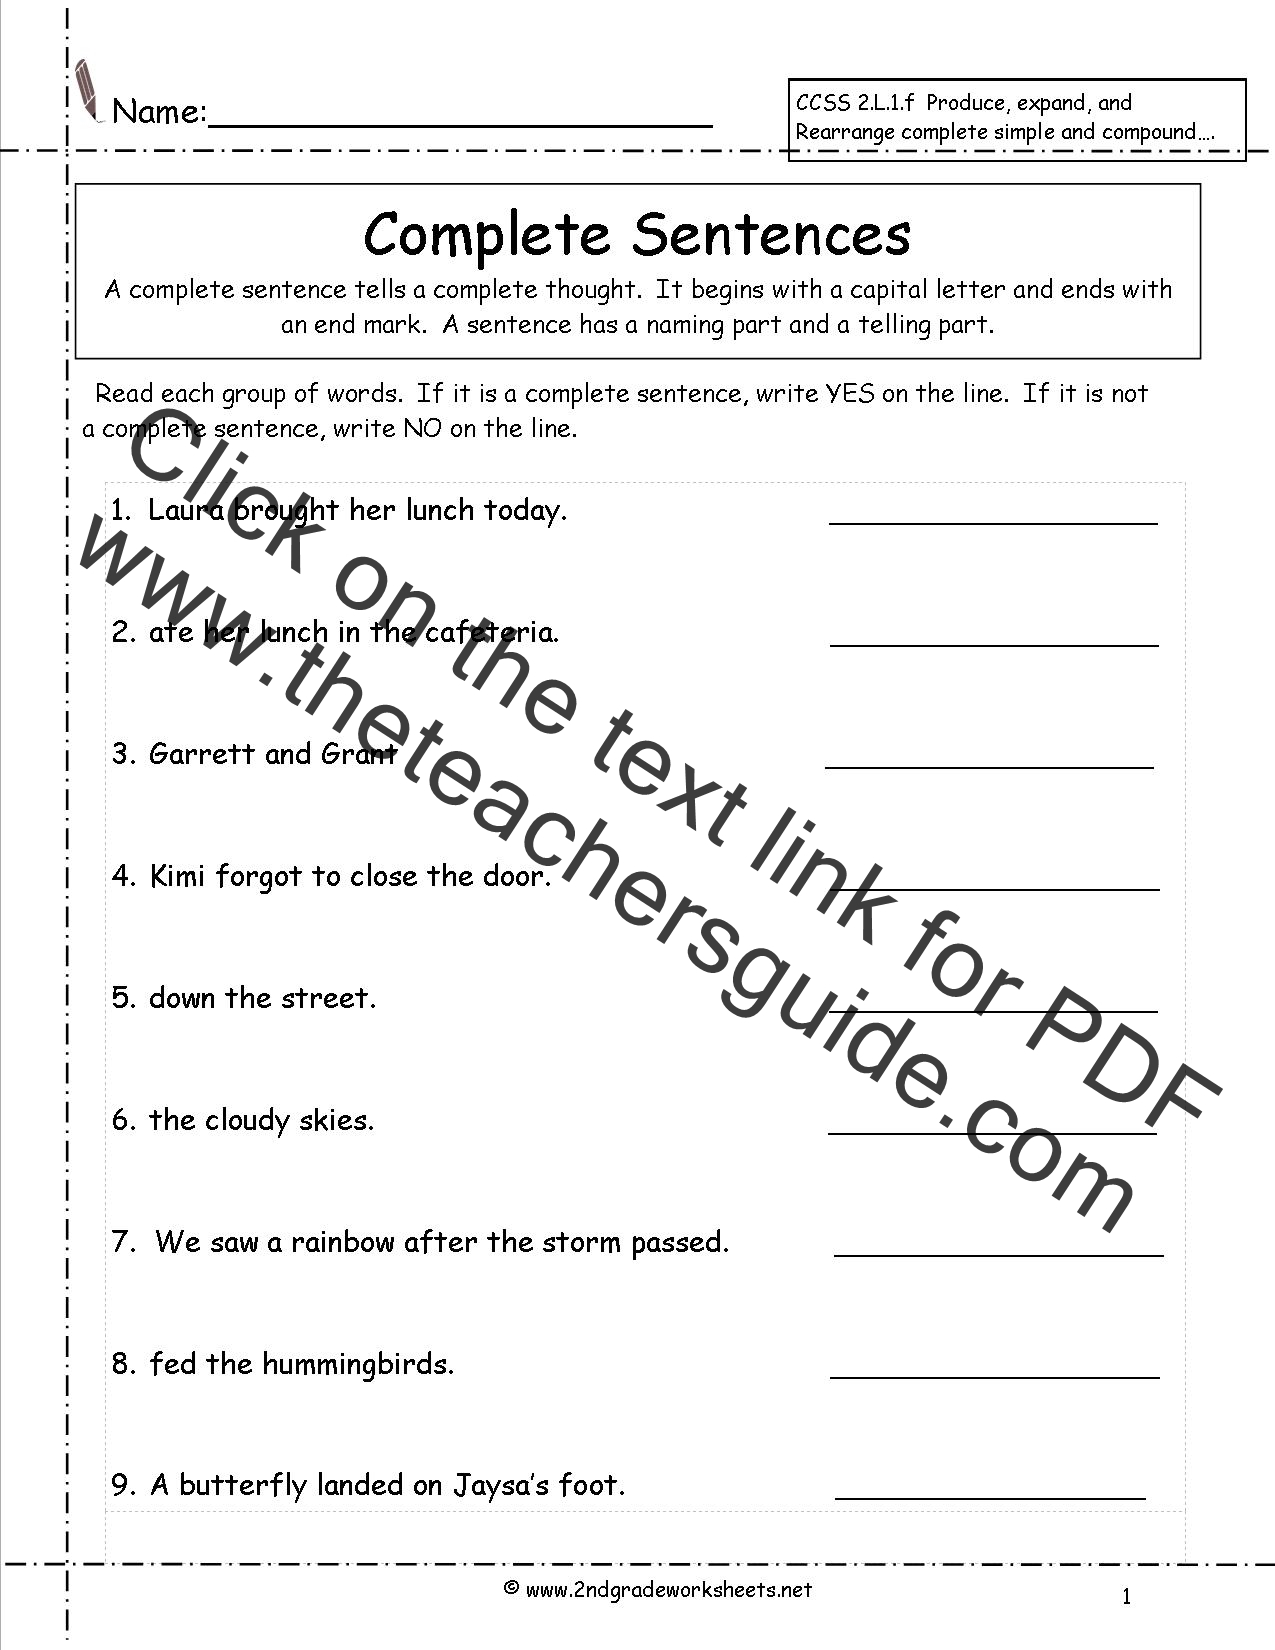 Second Grade Sentences Worksheets CCSS 2L1f Worksheets – Why Questions Worksheet